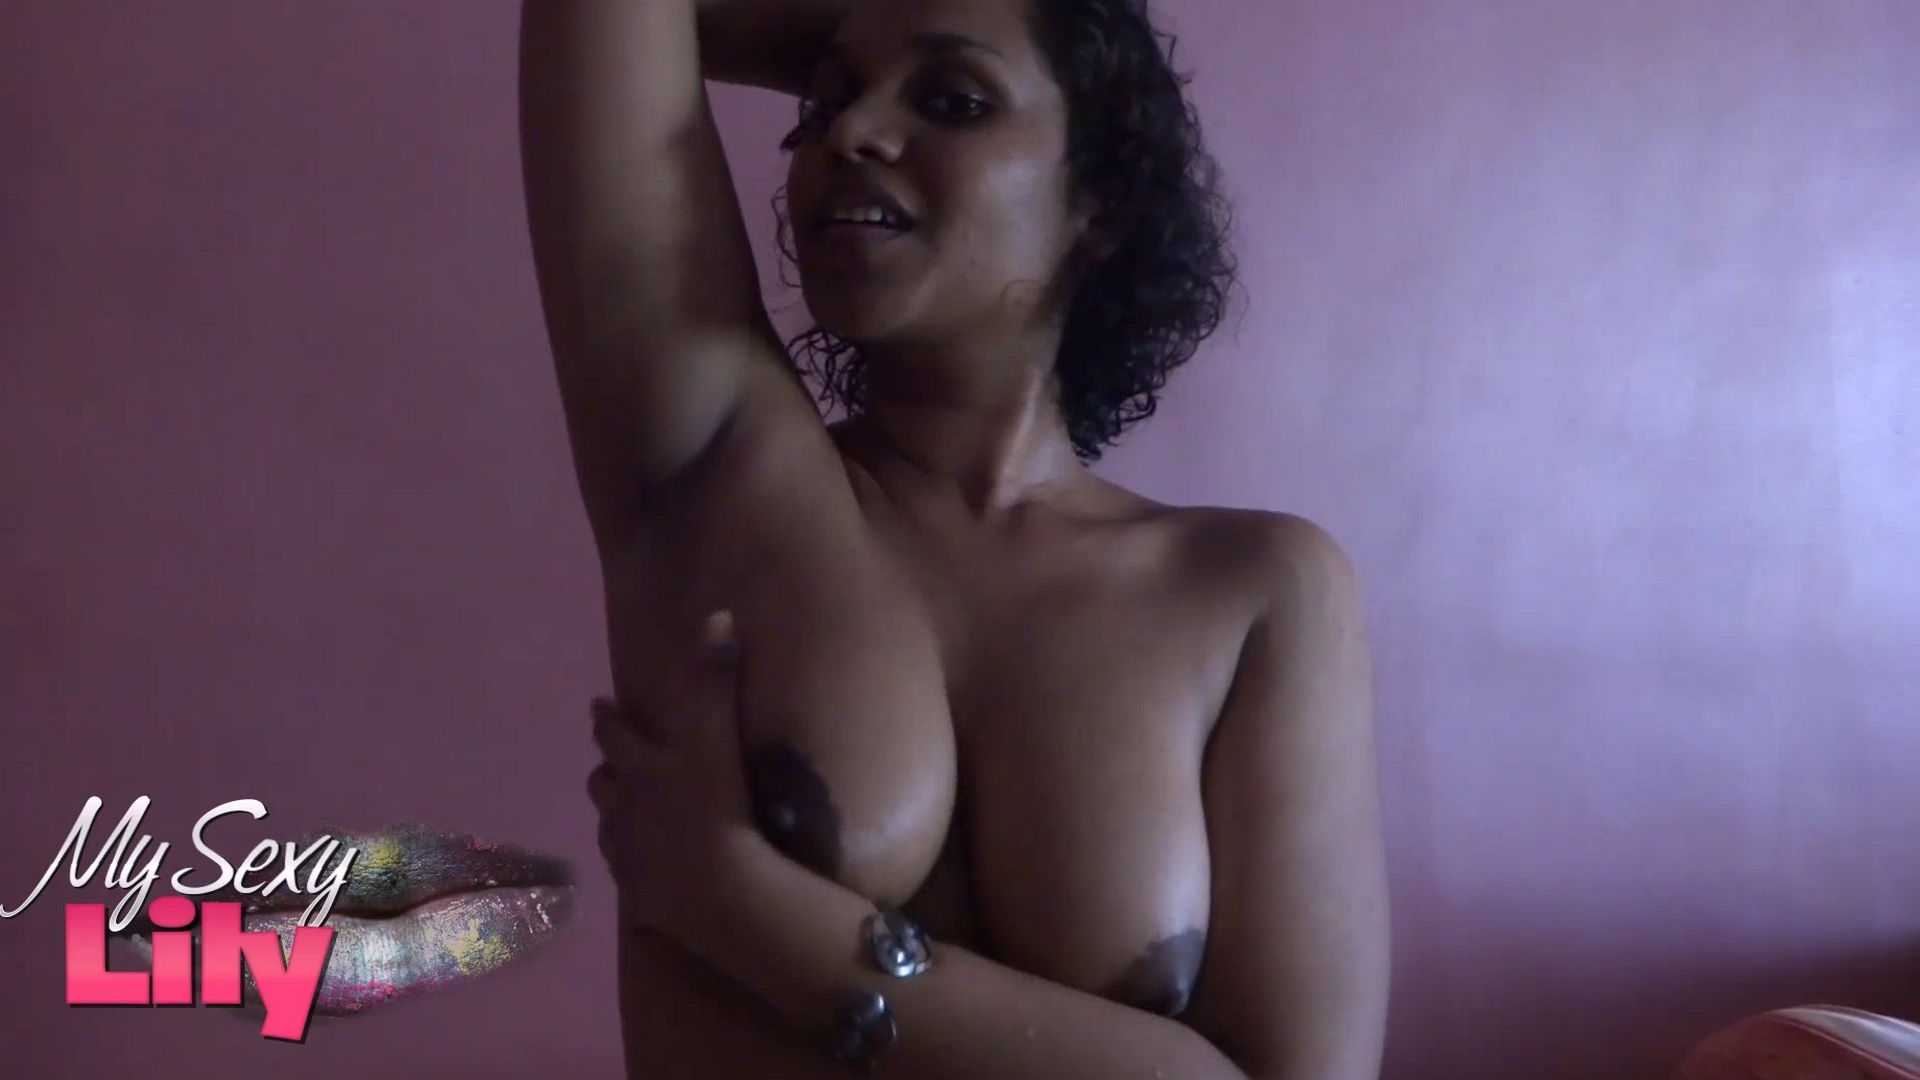 Lily vid gal 7. South desi babe lily licking her shaved armpits